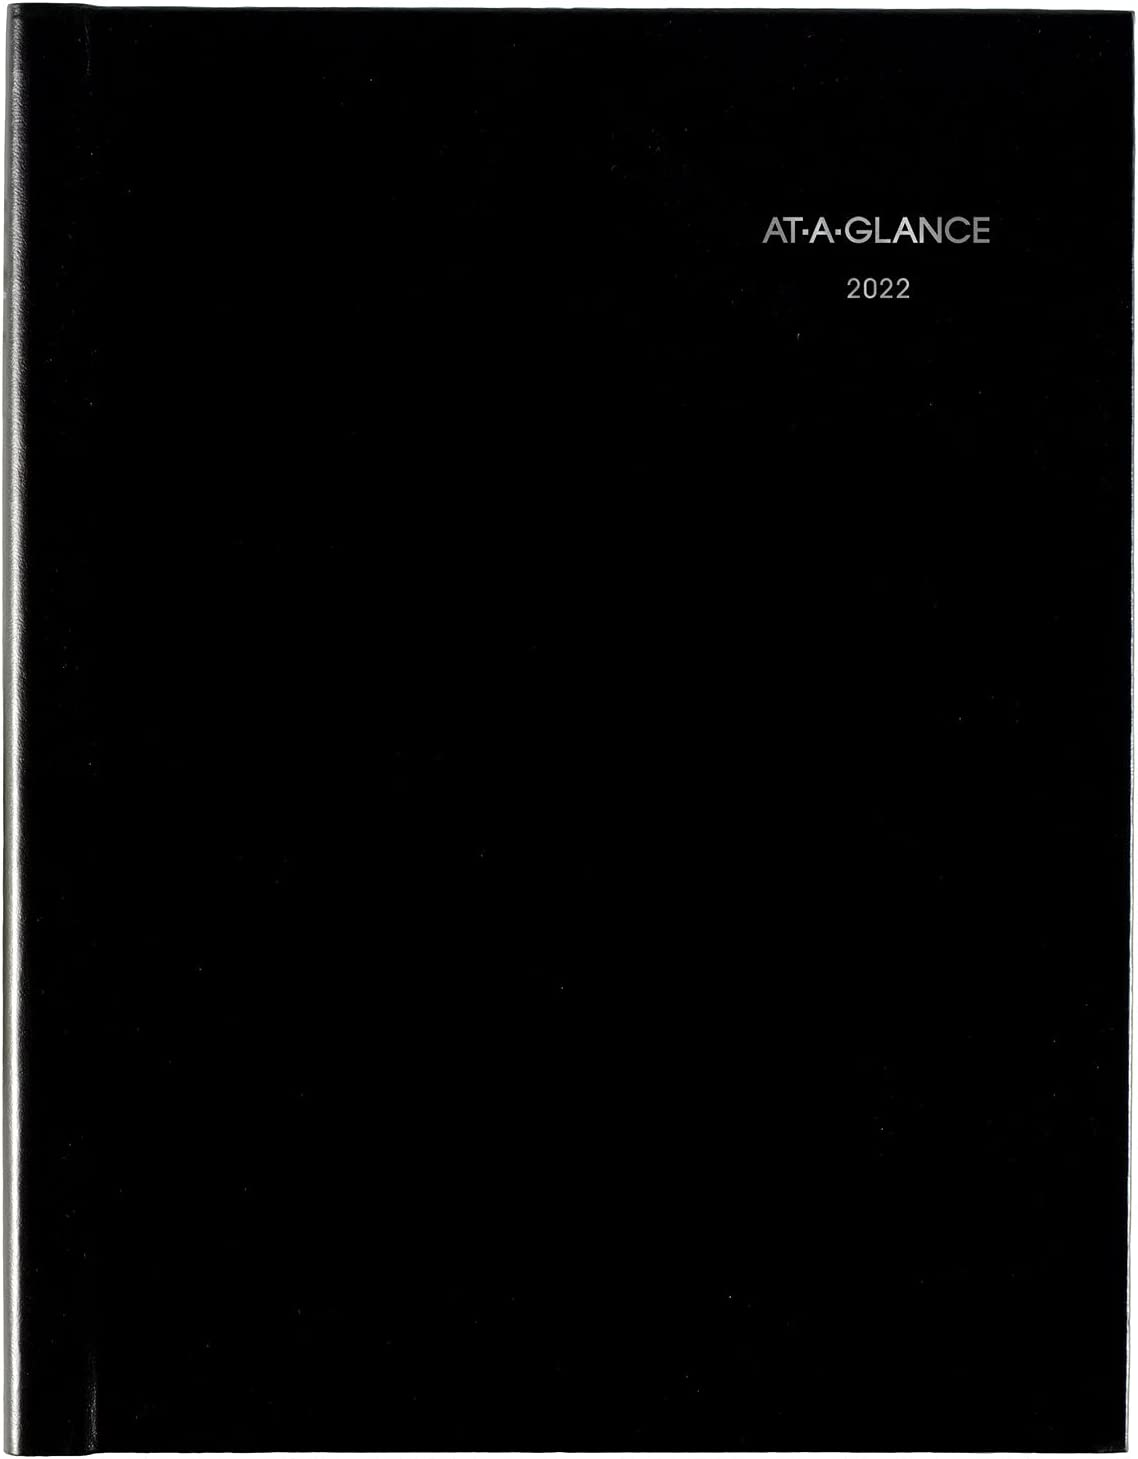 2022 Weekly Appointment Book & Planner by AT-A-GLANCE, 8